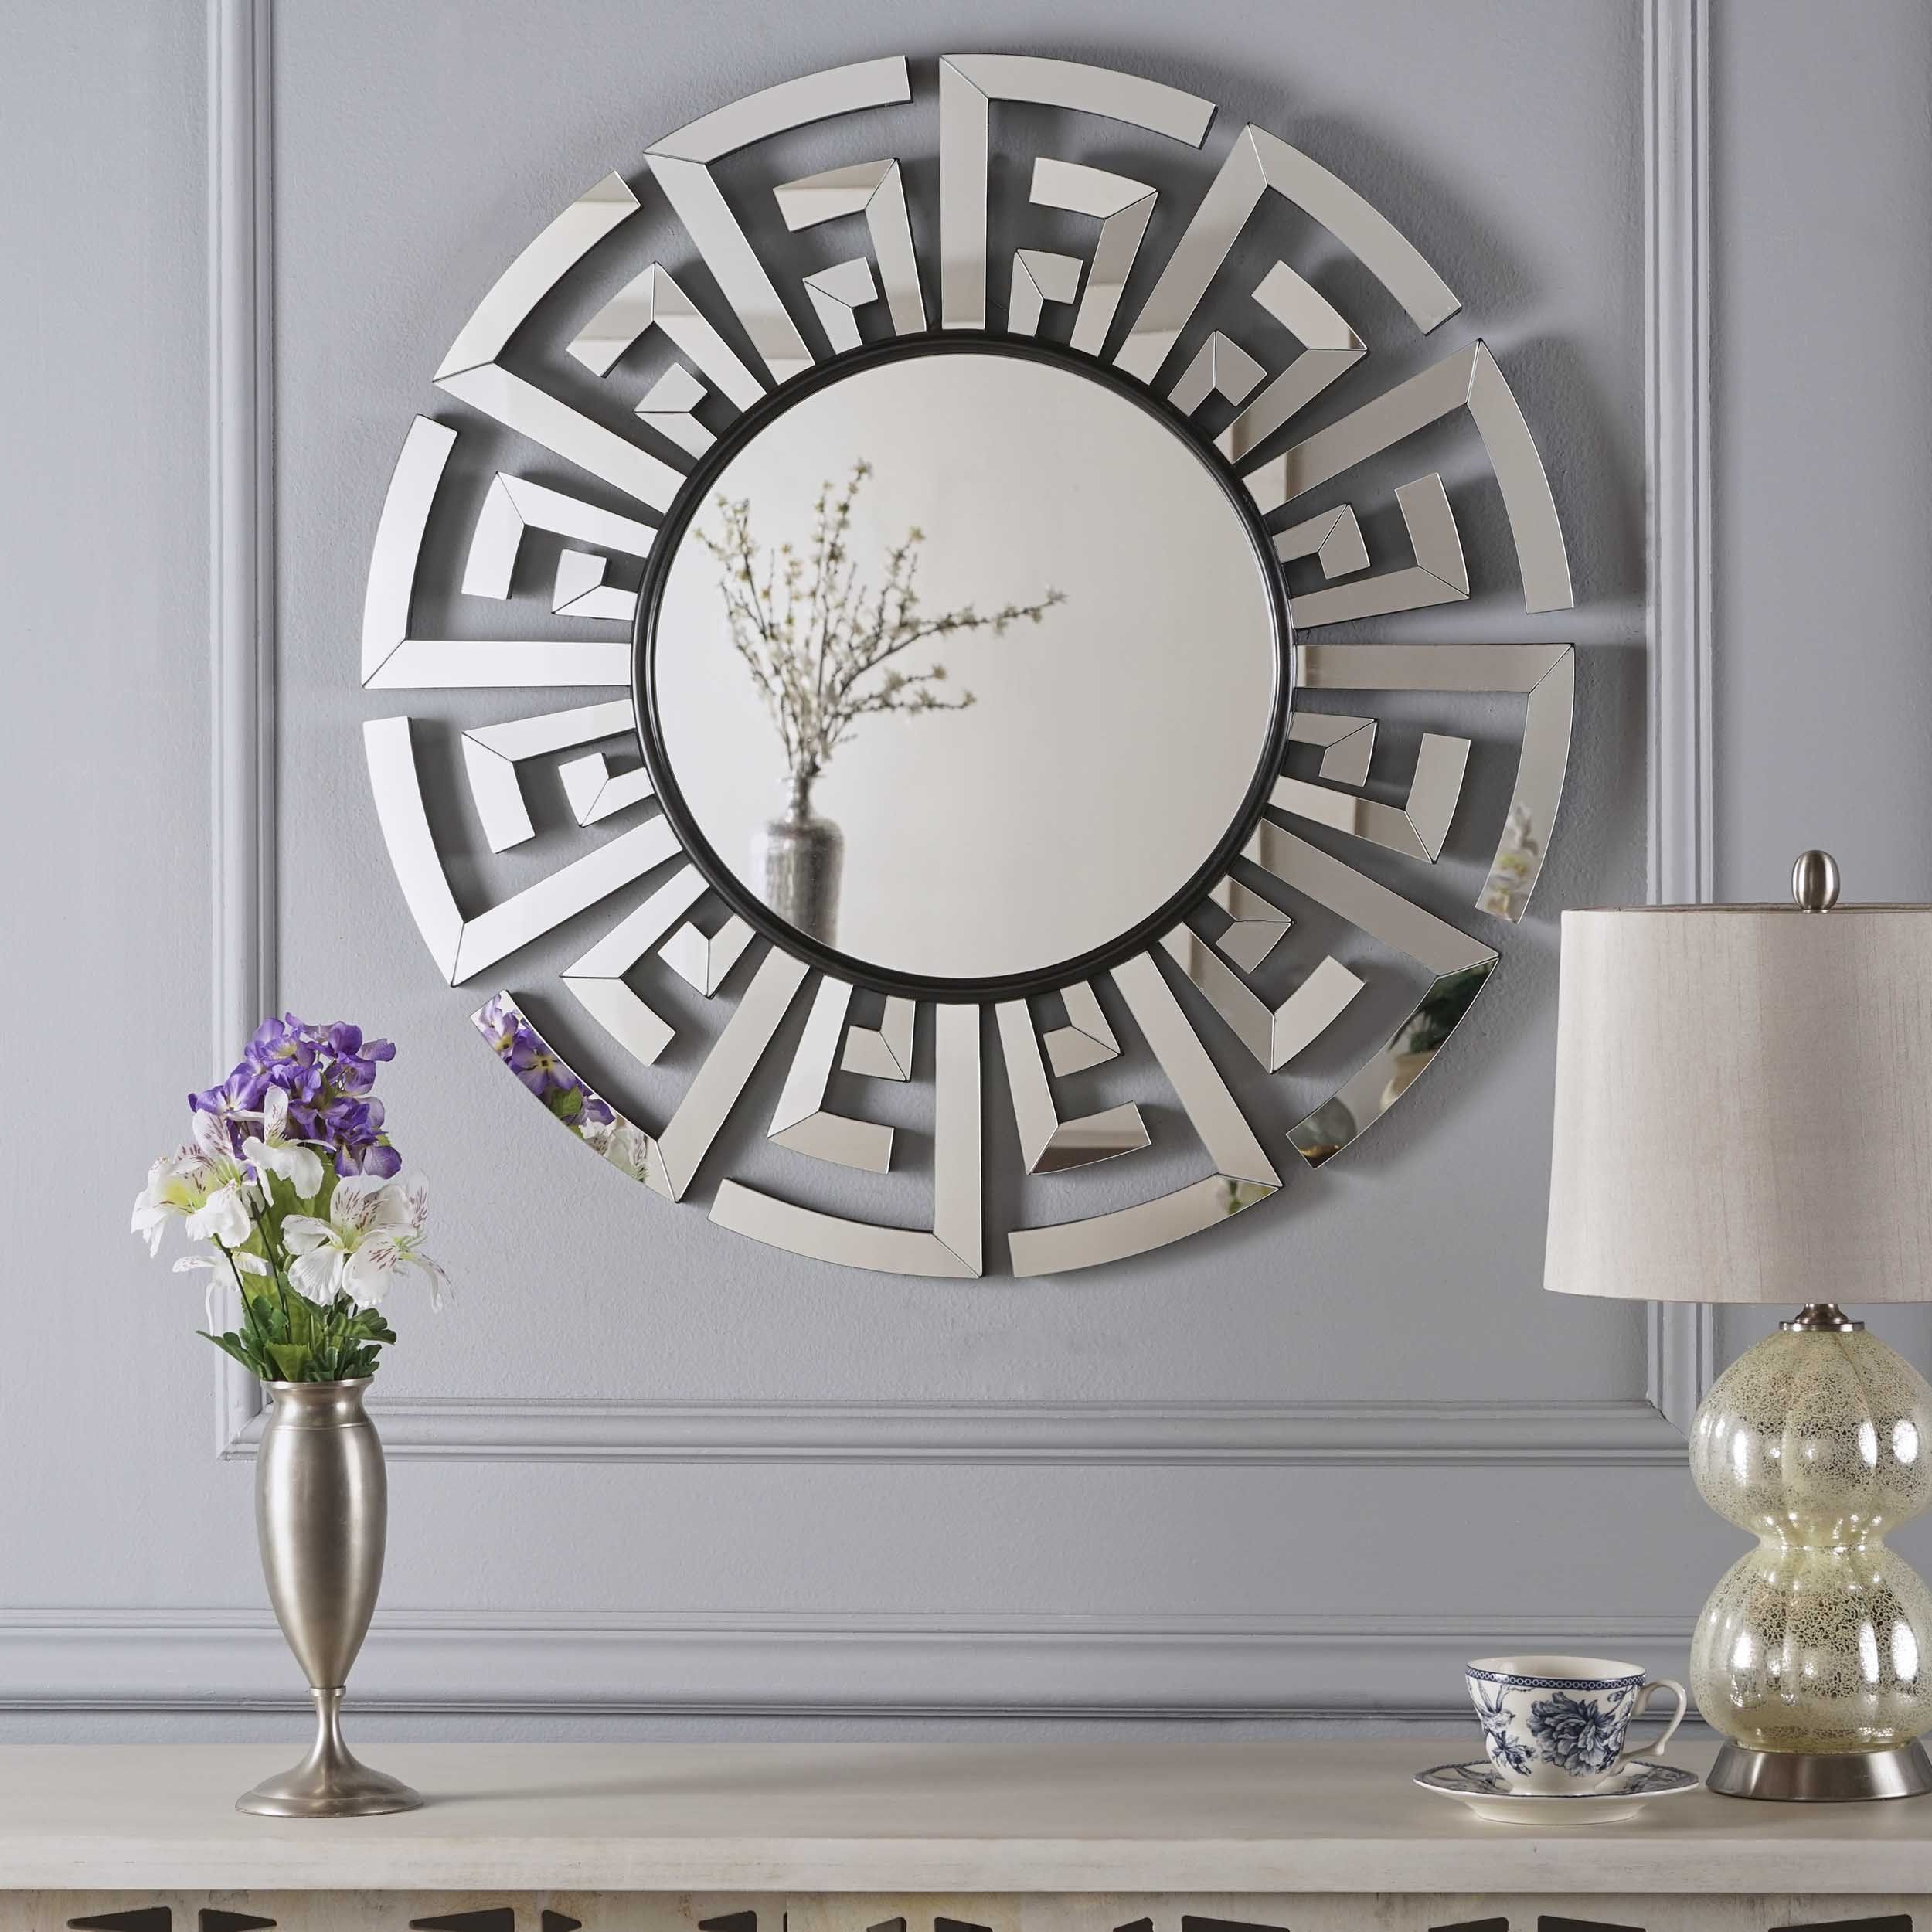 Far East Chinese Inspired Wall Mirror | Products | Round In Caja Rectangle Glass Frame Wall Mirrors (View 21 of 30)